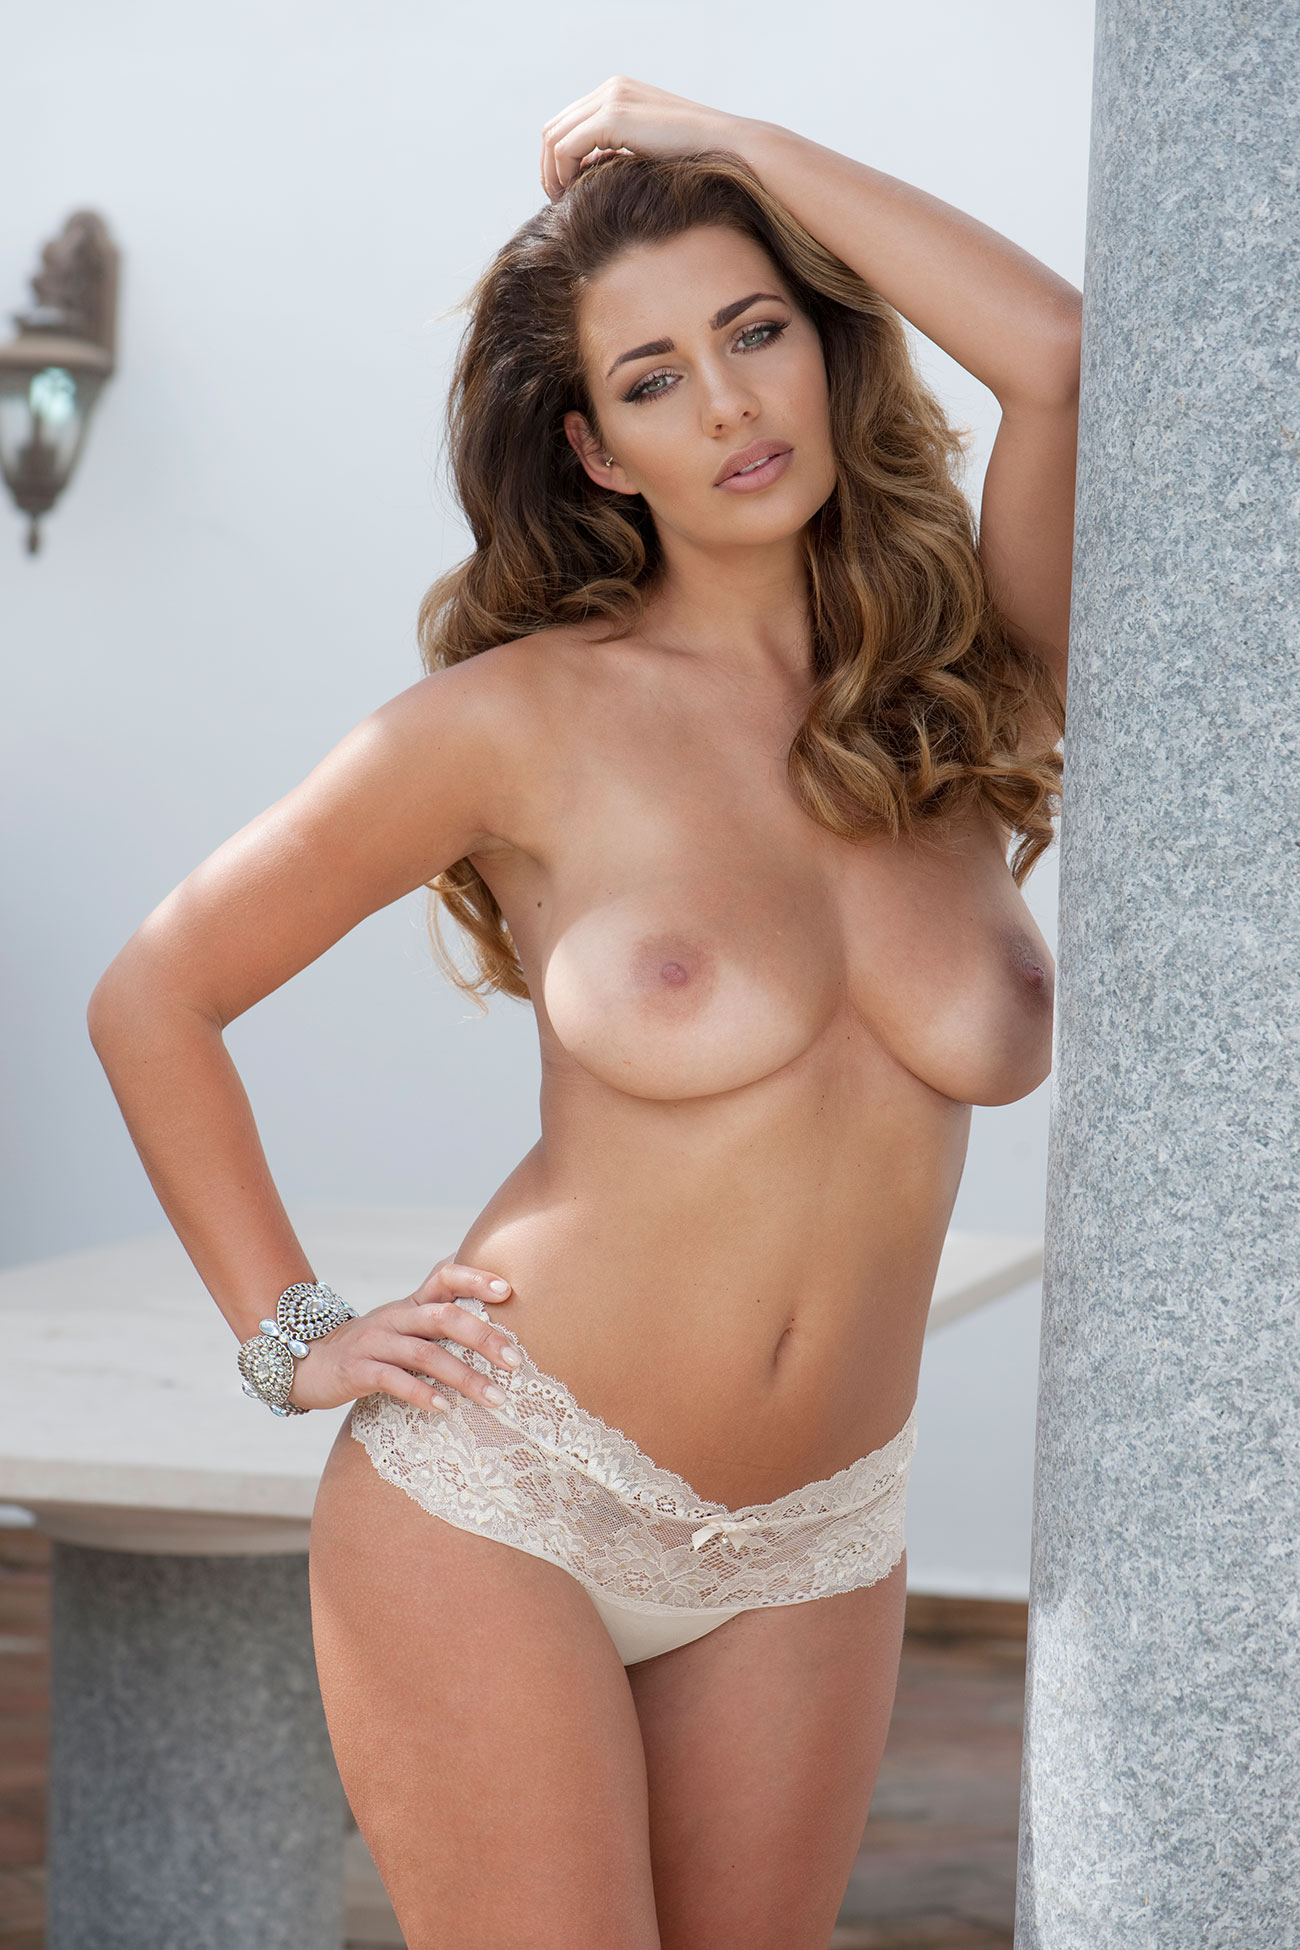 Holly Peers Topless (2 Photos)